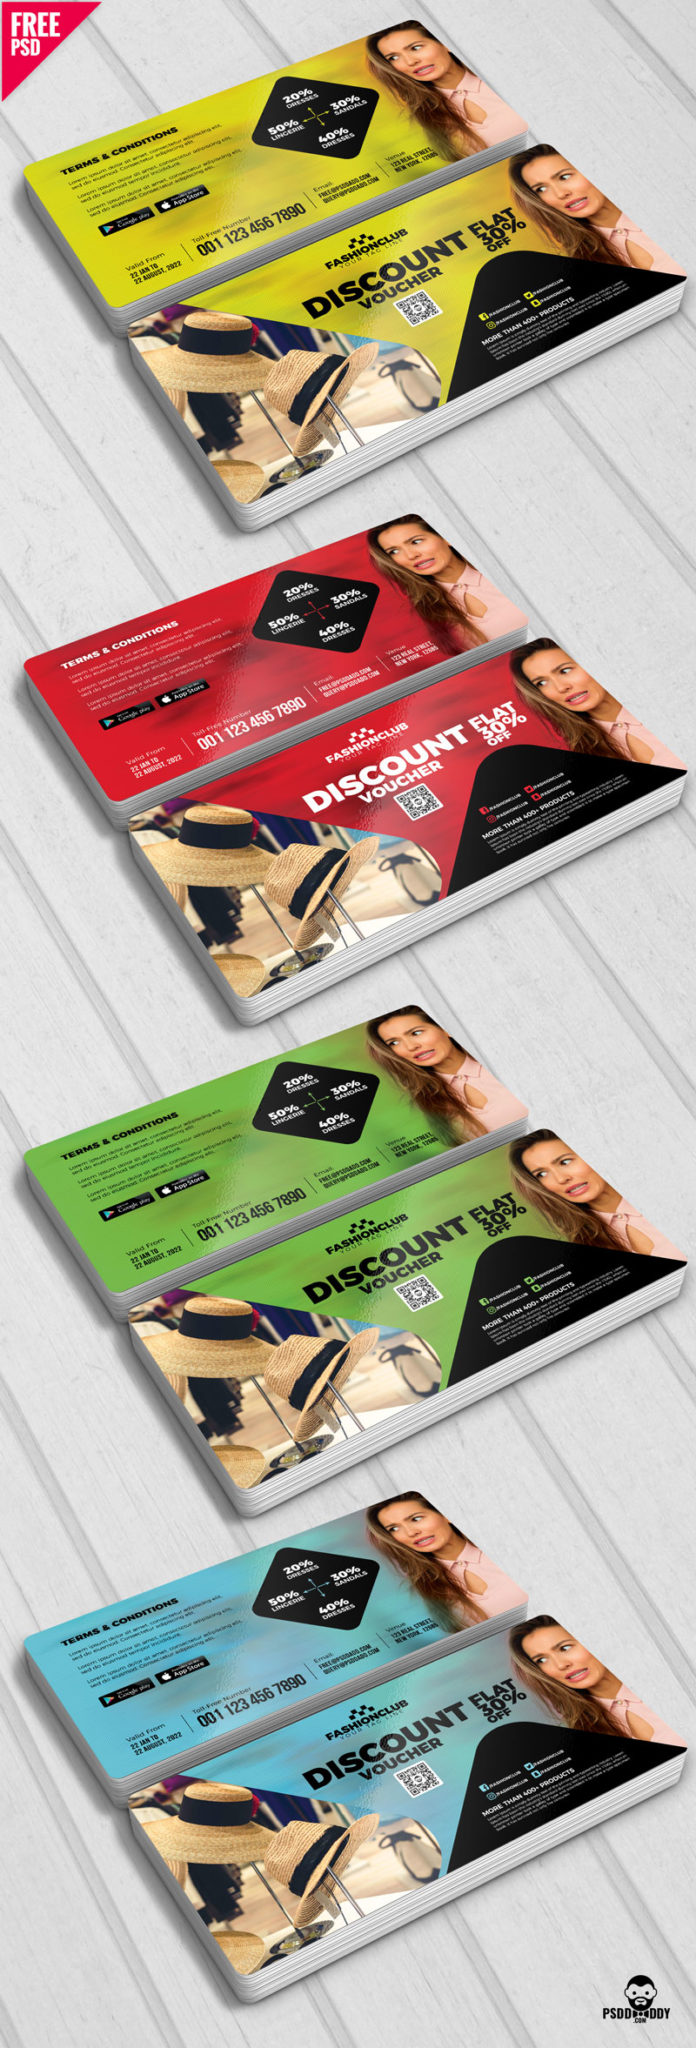 amazon gift voucher, business gift certificate template, card mockup, concert ticket template, coupon design, create a voucher, create your own gift card, custom gift cards, custom gift cards for business, custom gift certificates, design a gift voucher, design mockup, design toscano, design your own gift card, discount coupon mockup, e gift cards, free gift certificate template free mockup, free mockup psd, free mockup templates, gift, gift card, gift card design, gift card design online, gift card design template, gift card images, gift card maker, gift card template, gift certificate ideas, gift ideas, gift voucher design, gift voucher design ideas, gift voucher mockup, gift voucher printing, graphic design mockups, make your own coupon, make your own gift card, make your own gift voucher, mock up, mockup, mockup design, mockup free, mockup psd, mockup psd free, mockup templates online gift vouchers, pandora gift vouchers, photoshop mockup, pizza coupons, postcard mockup, print coupons, psd mockups, raffle ticket template, ticket template, voucher design, voucher format, voucher template, voucher template free, psd mockup free download, fashion gift voucher free psd, psd mockups, psd daddy, psddaddy, download psd, downloadpsd, creativepsd, creative psd, psd freebies, psd download, freebies, free download psd,